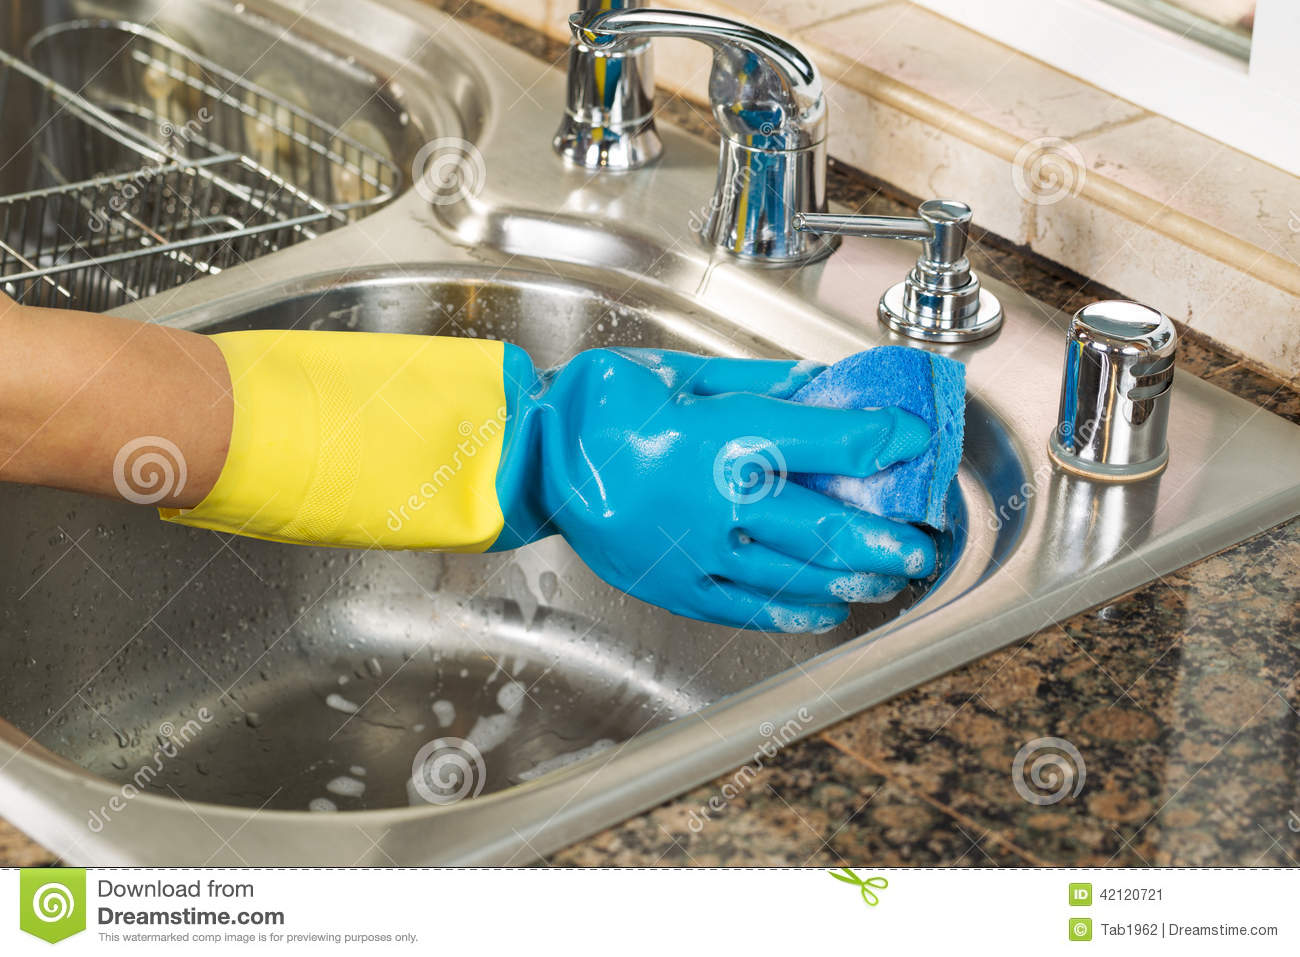 Cleaning inside of kitchen sink with soapy water and sponge